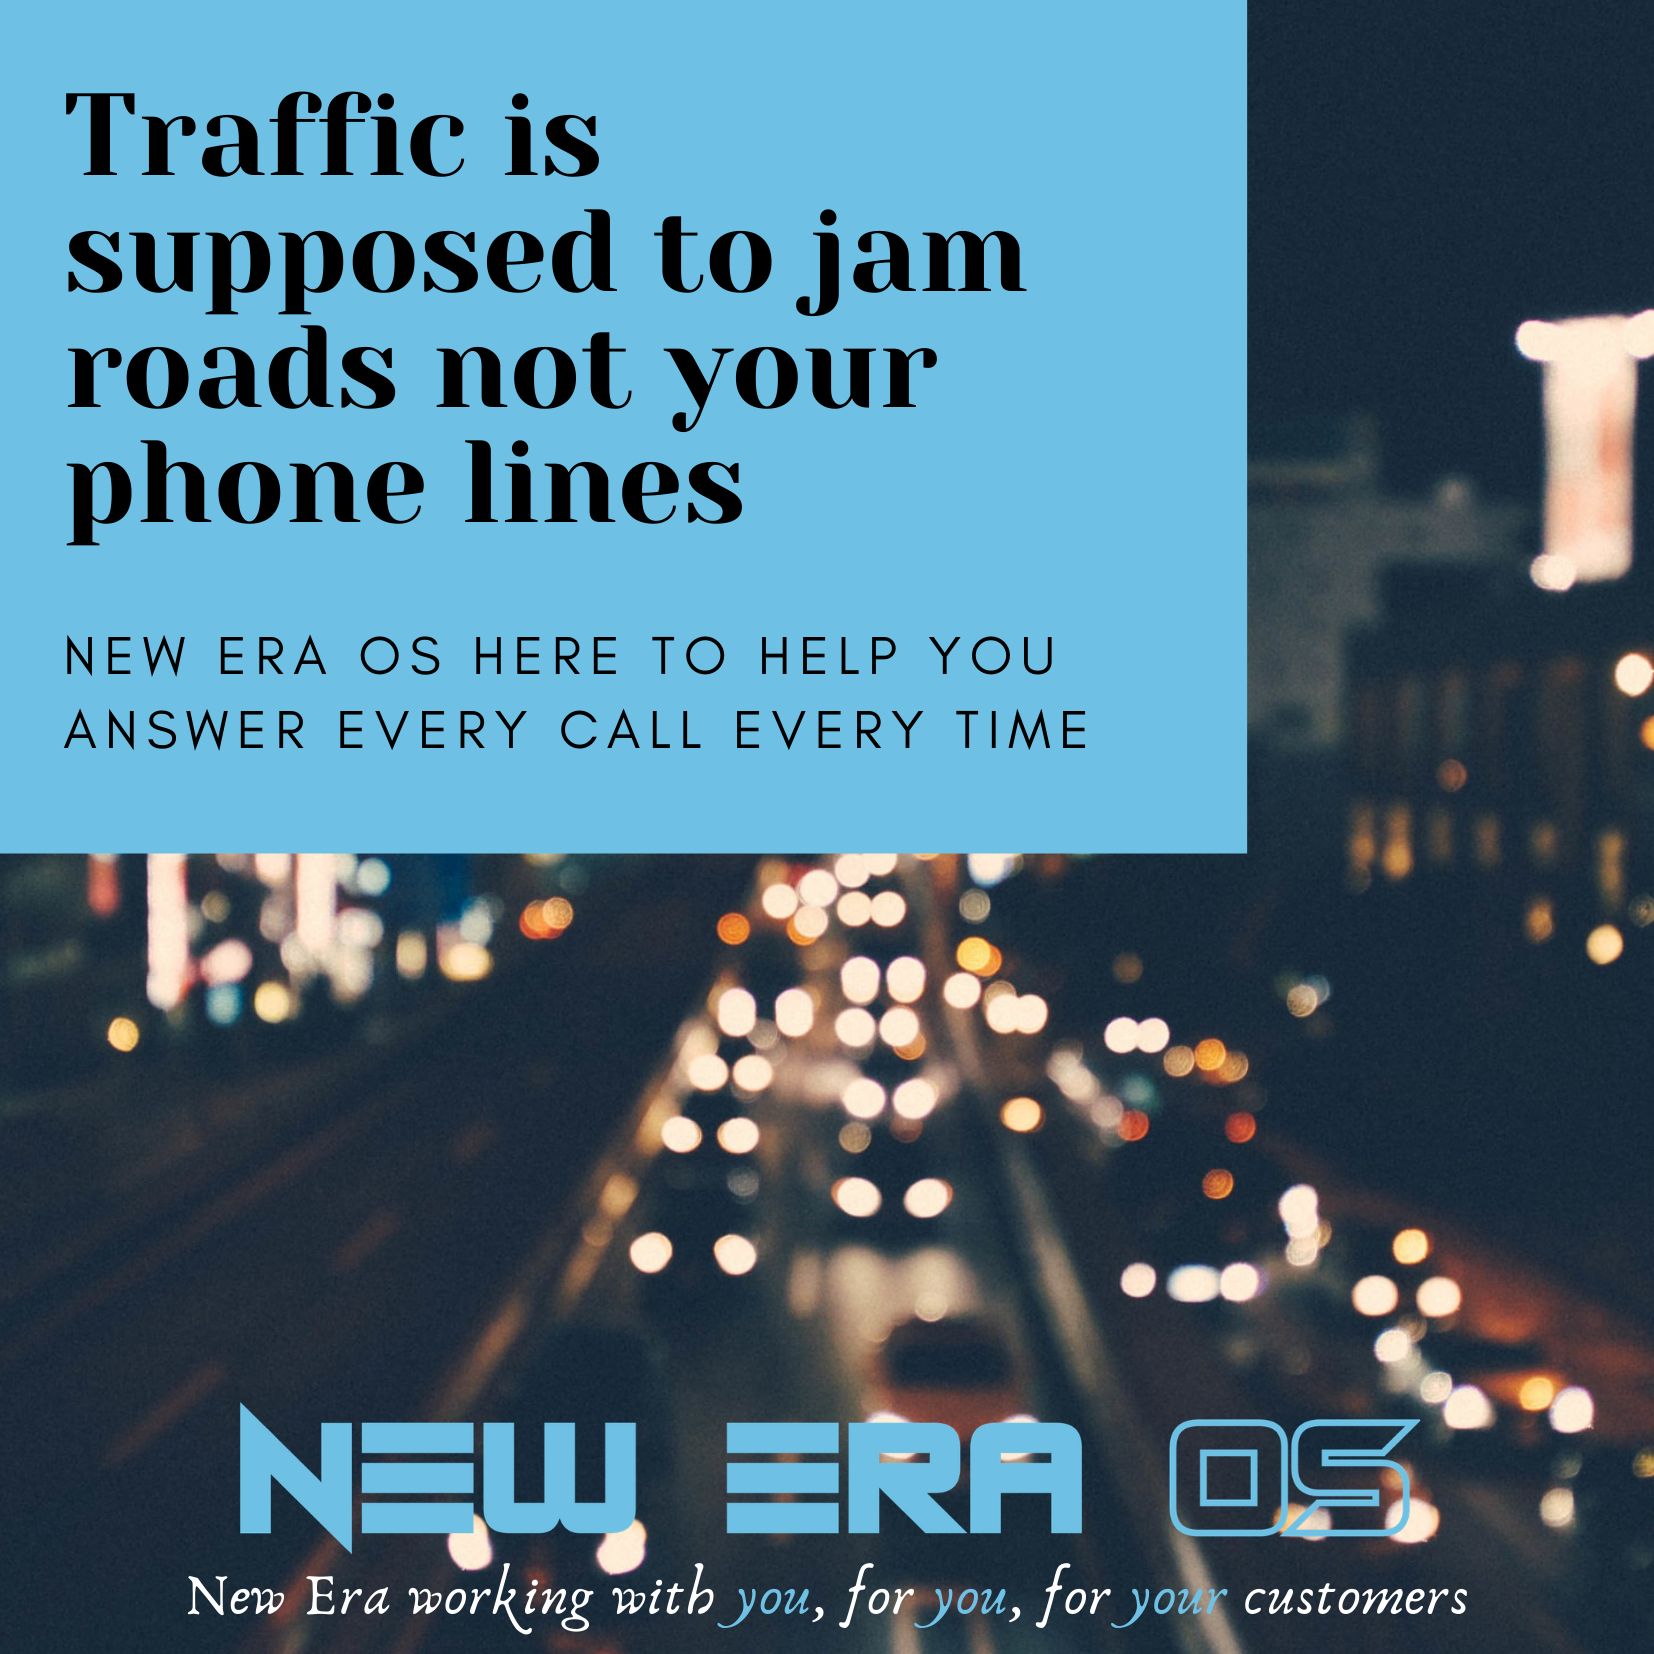 Traffic is supposed to Jam roads not your phone lines